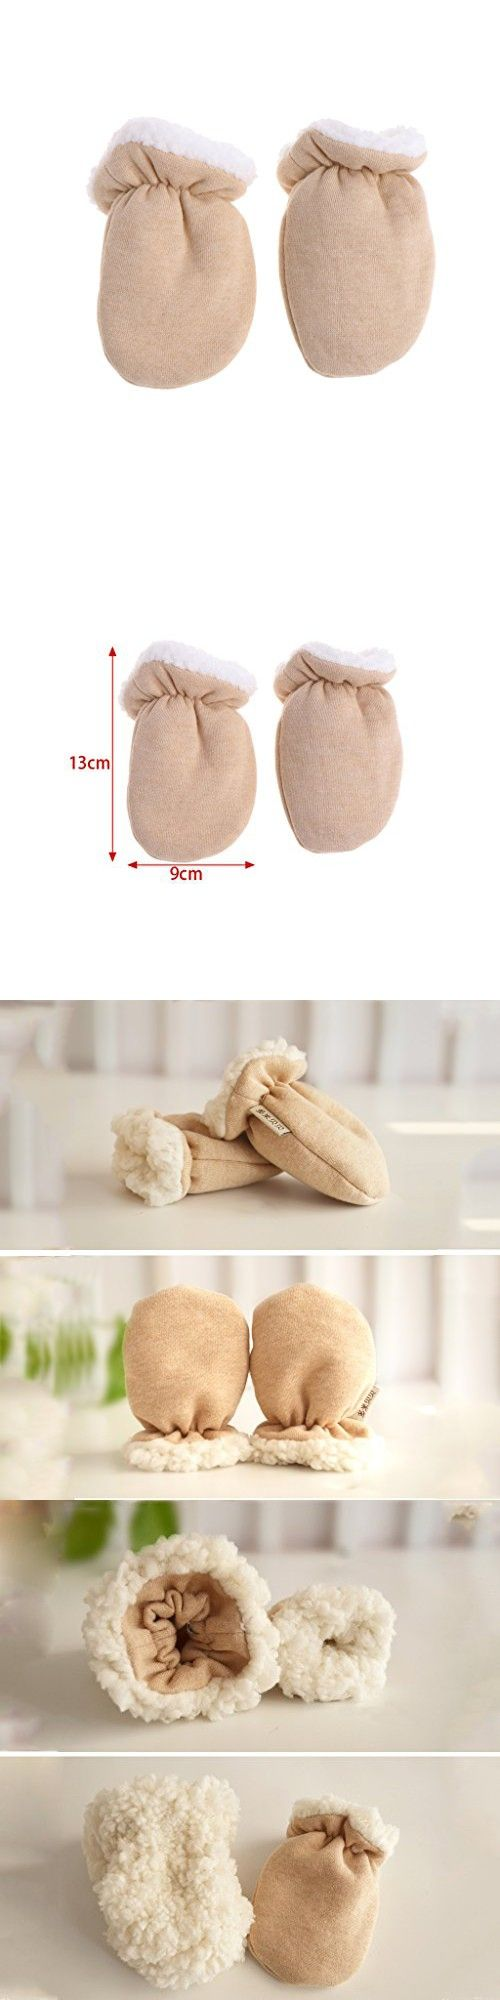 ed9d7e58e OTGO Cute Cartoon Thicken Warm Fleece Infant Baby Winter Warm Gloves ...